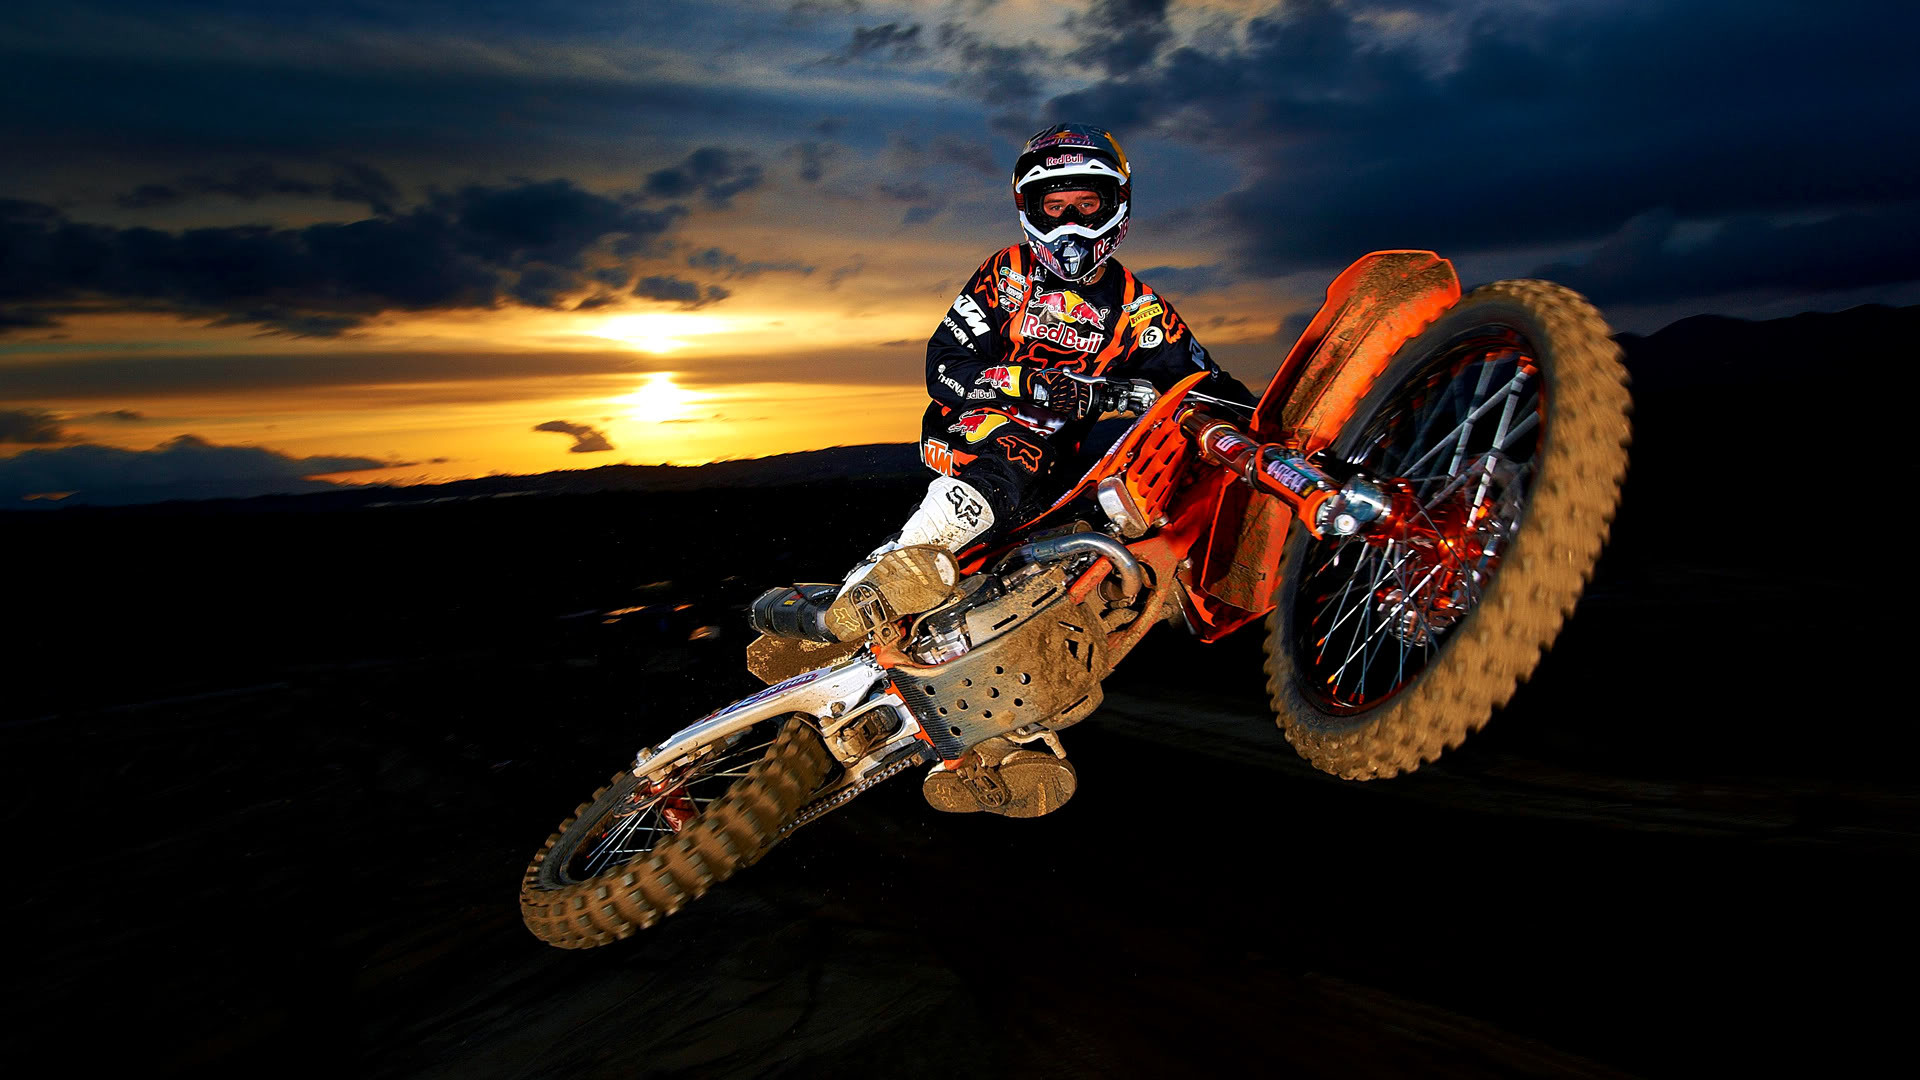 Dirt Bike Wallpaper 71 Images